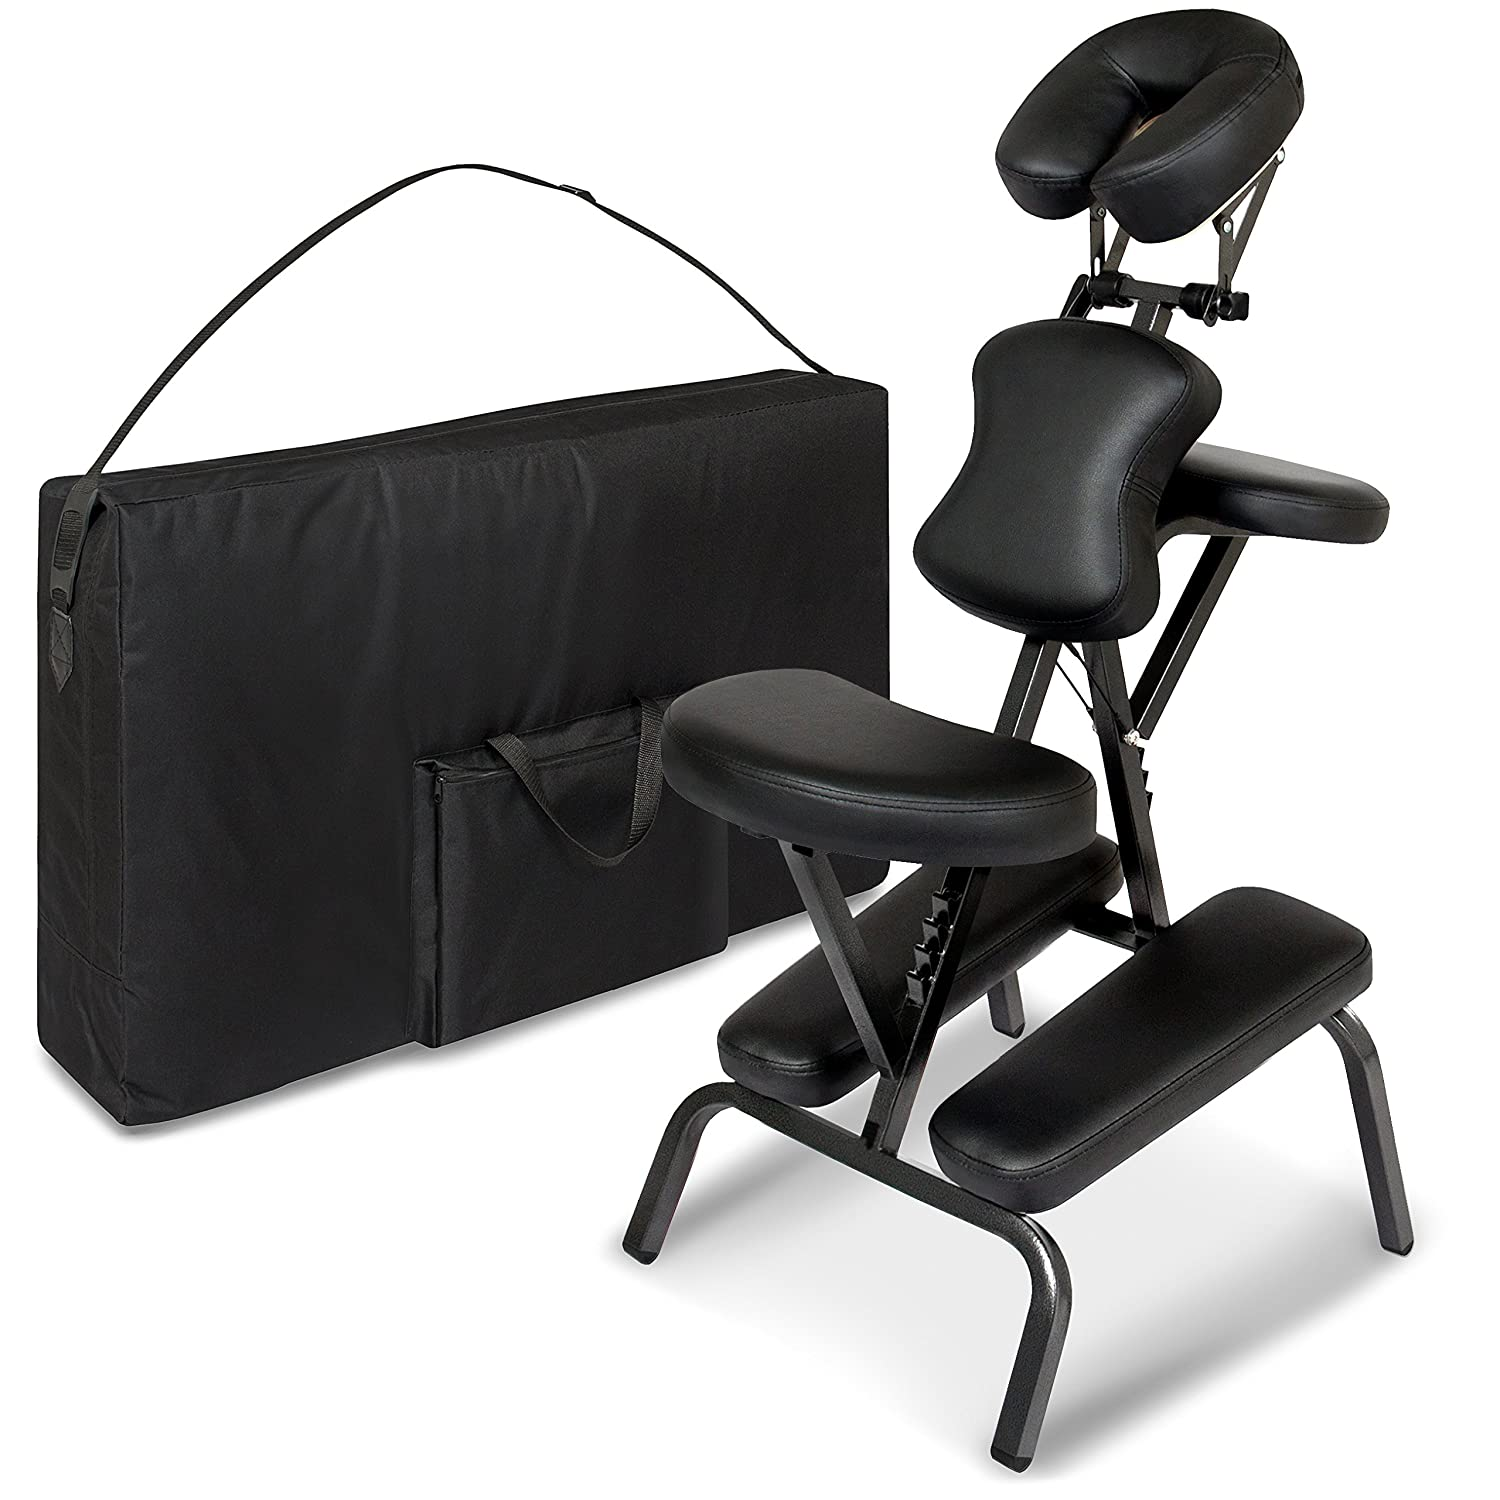 Amazon Best Choice Products Folding Portable Massage Chair